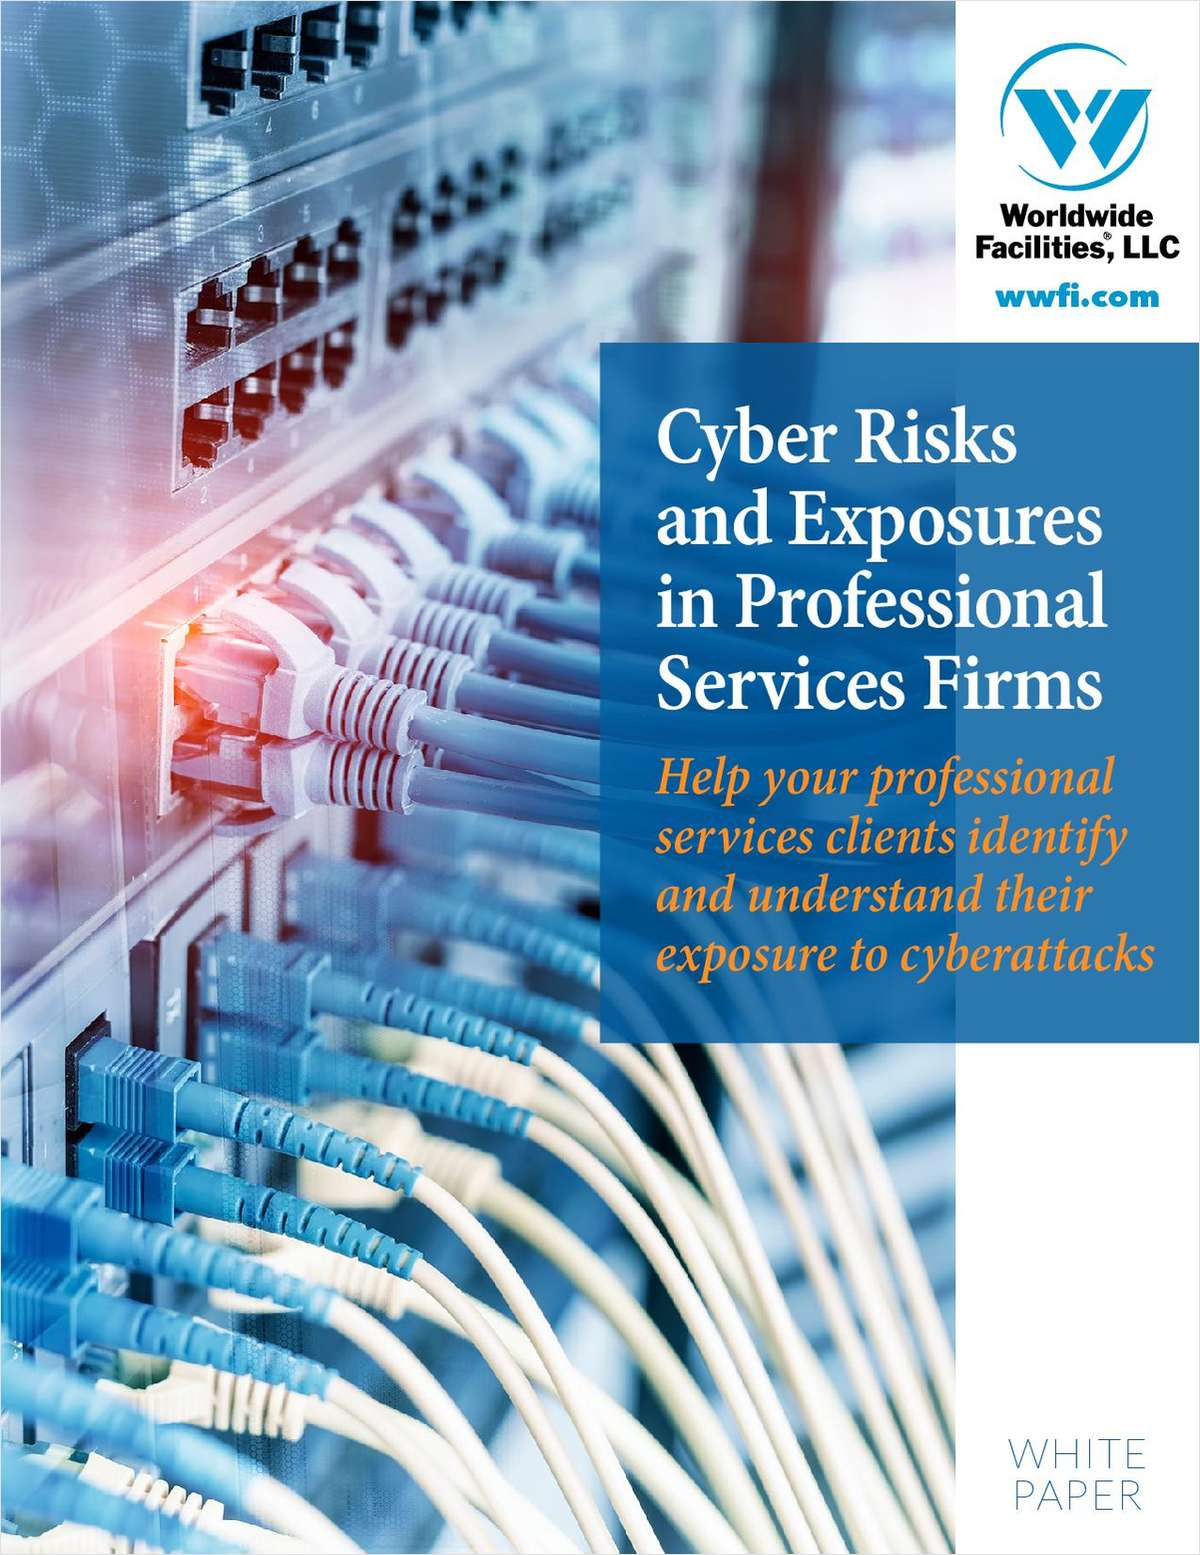 Cyber Risks and Exposures in Professional Services Firms